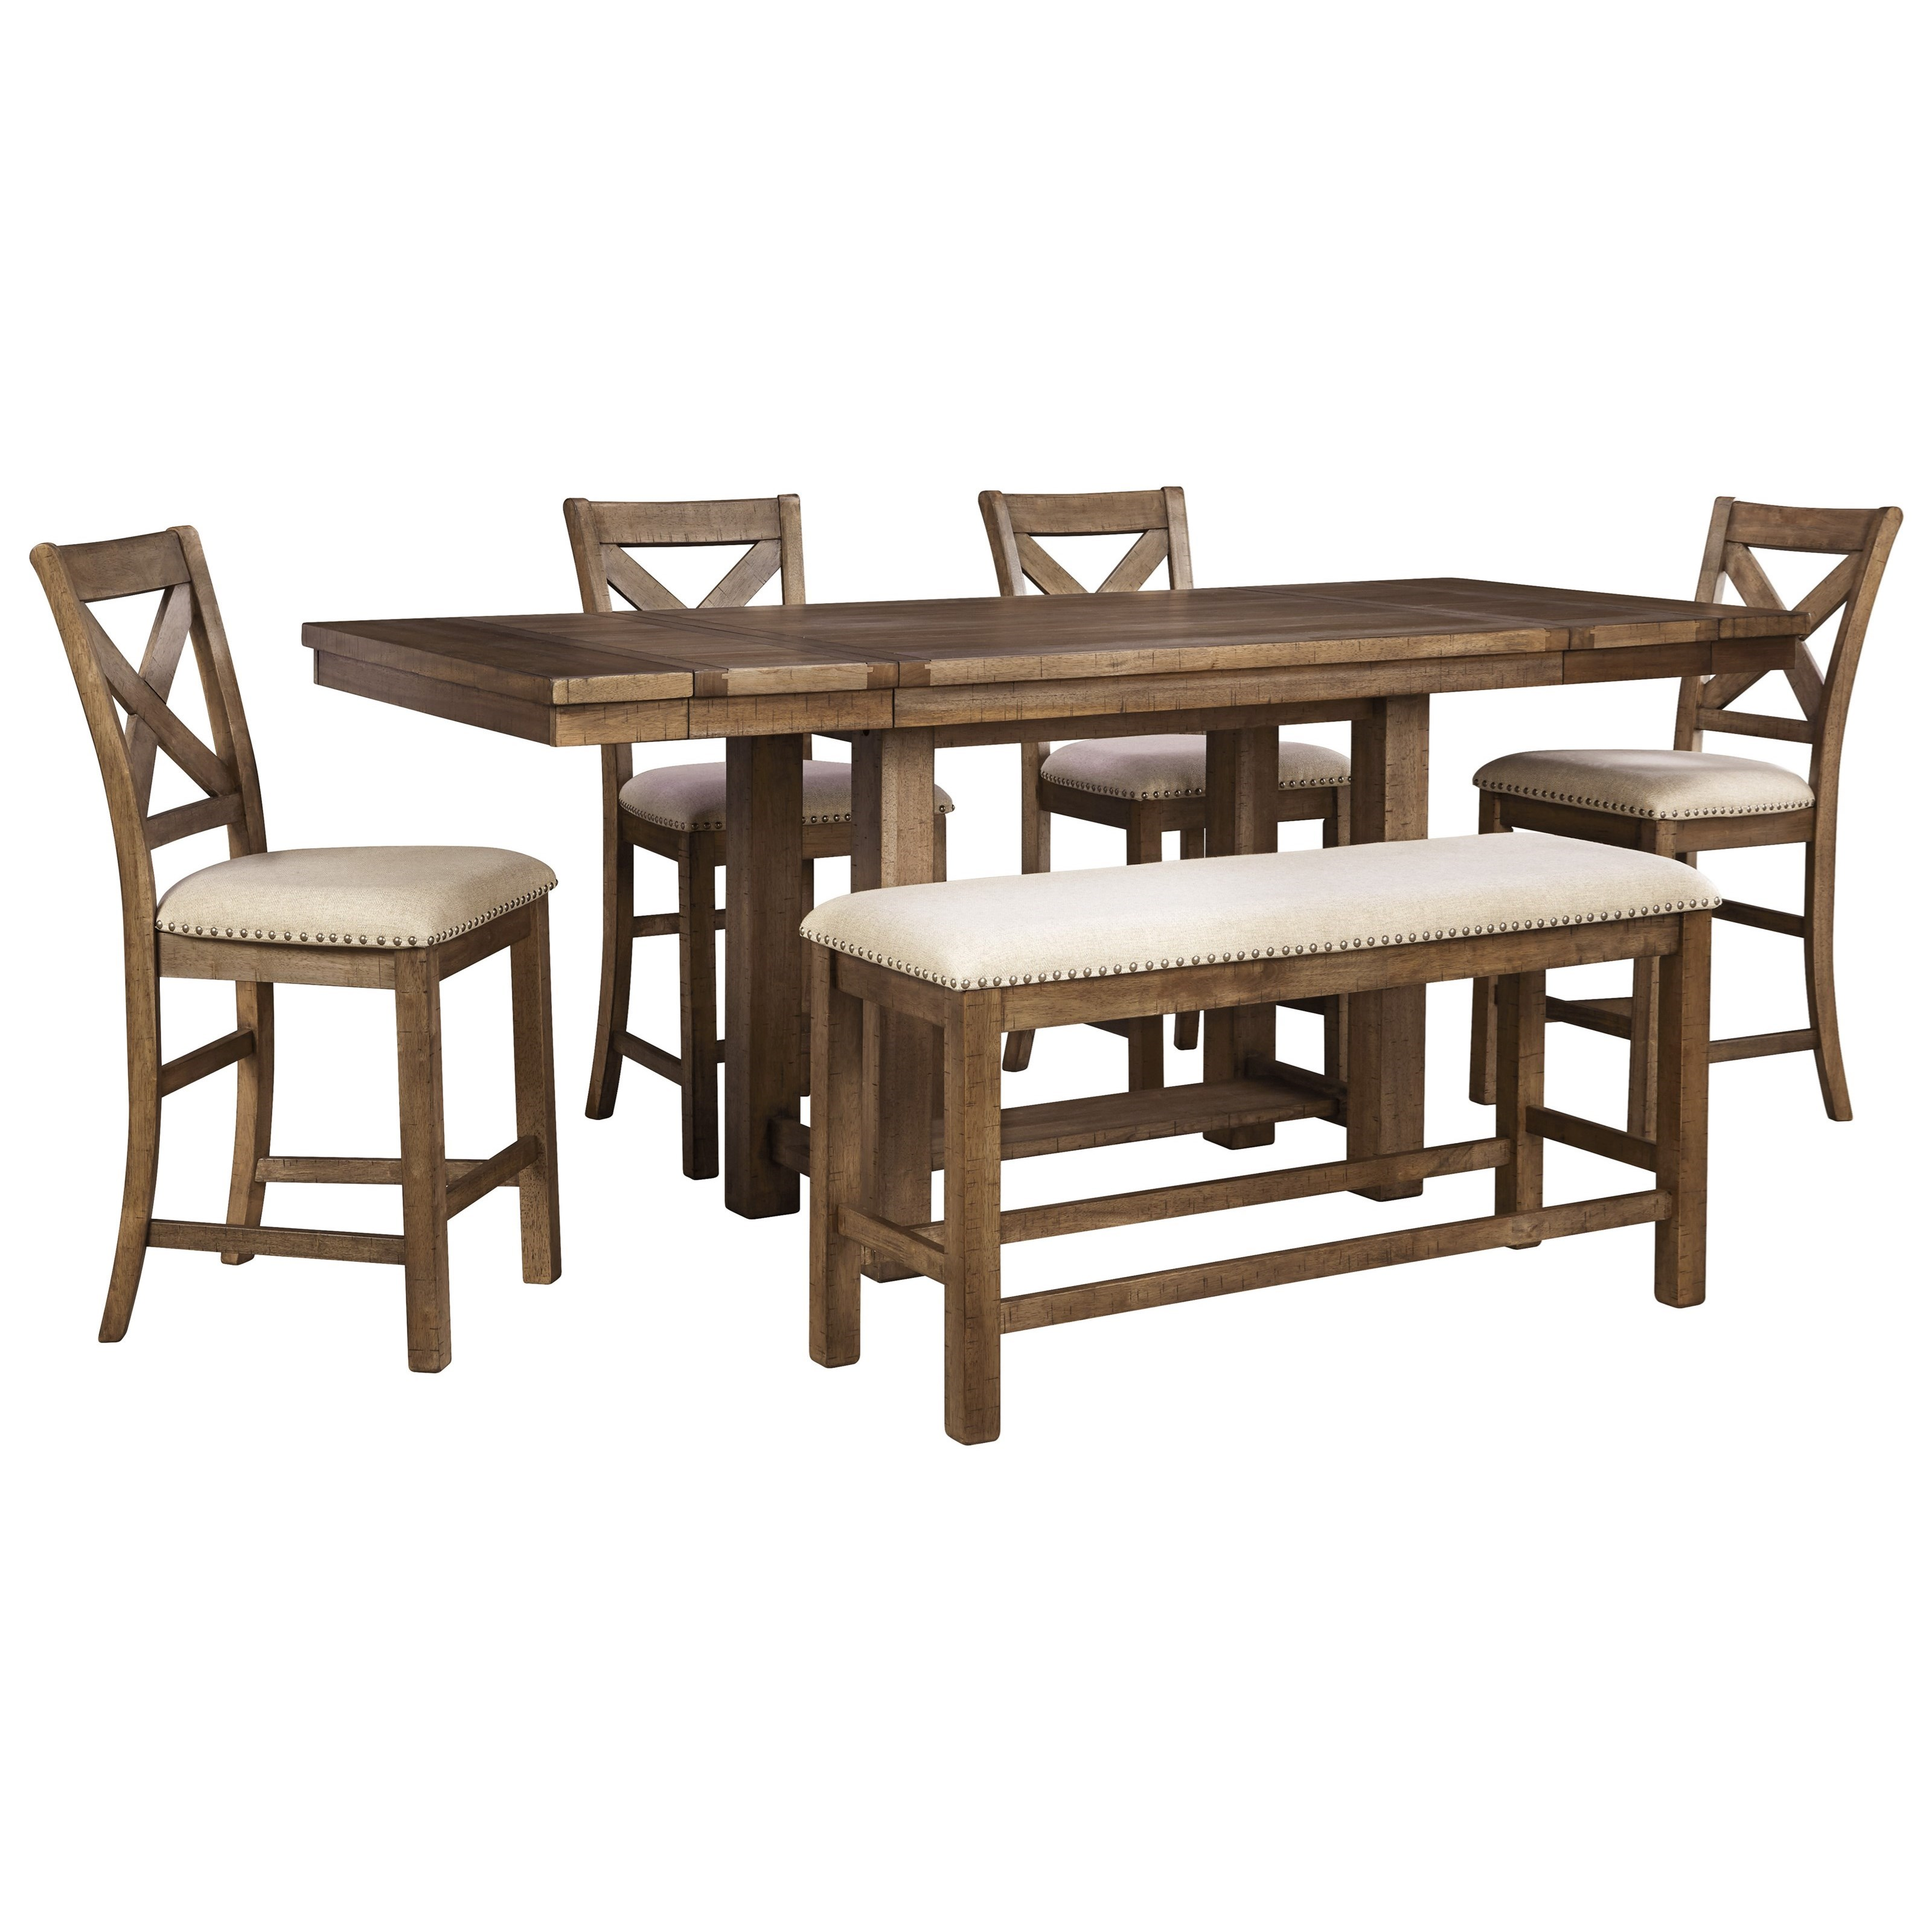 Moriville 6-Piece Rectangular Counter Table w/ Bench by Signature Design by Ashley at Godby Home Furnishings